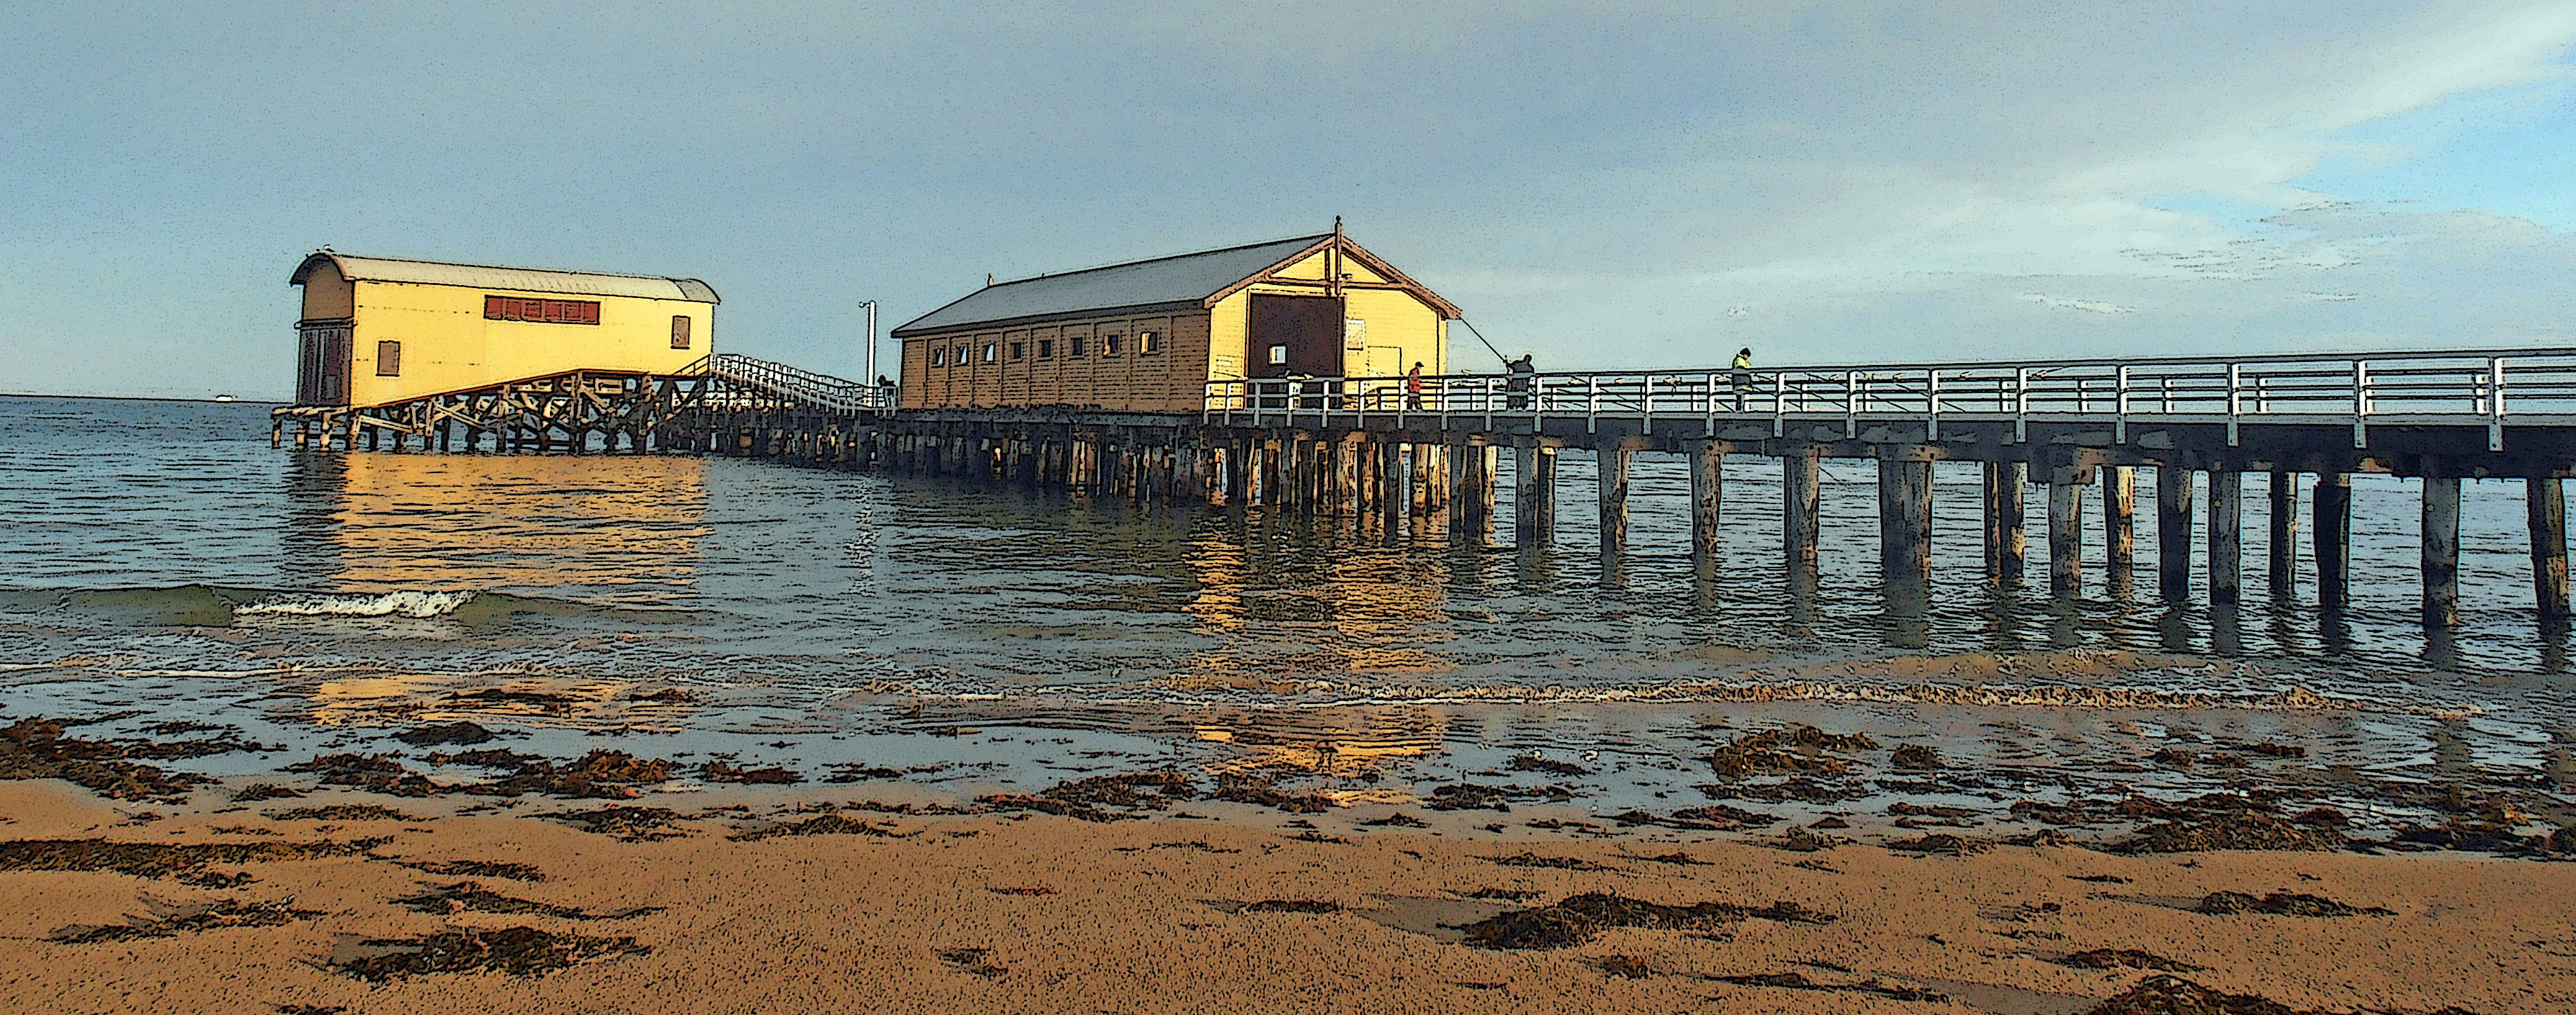 Queenscliff Pier and Lifeboat Shed